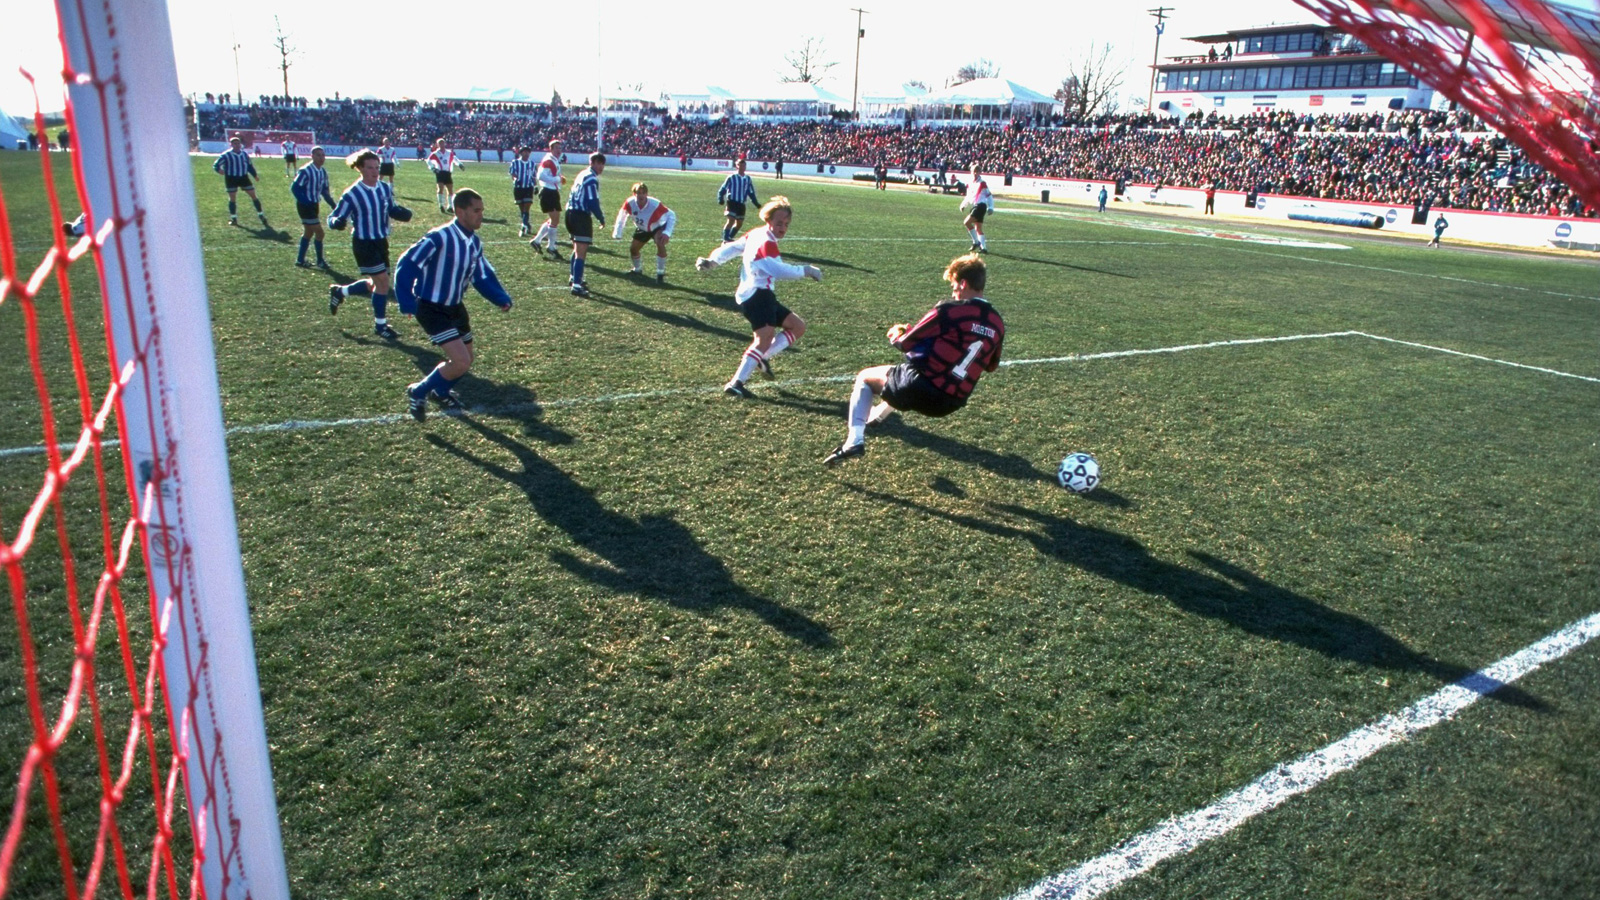 Lars Hansen scores one of Wisconsin's two goals in a 2-0 1995 men's soccer national championship triumph over Duke.